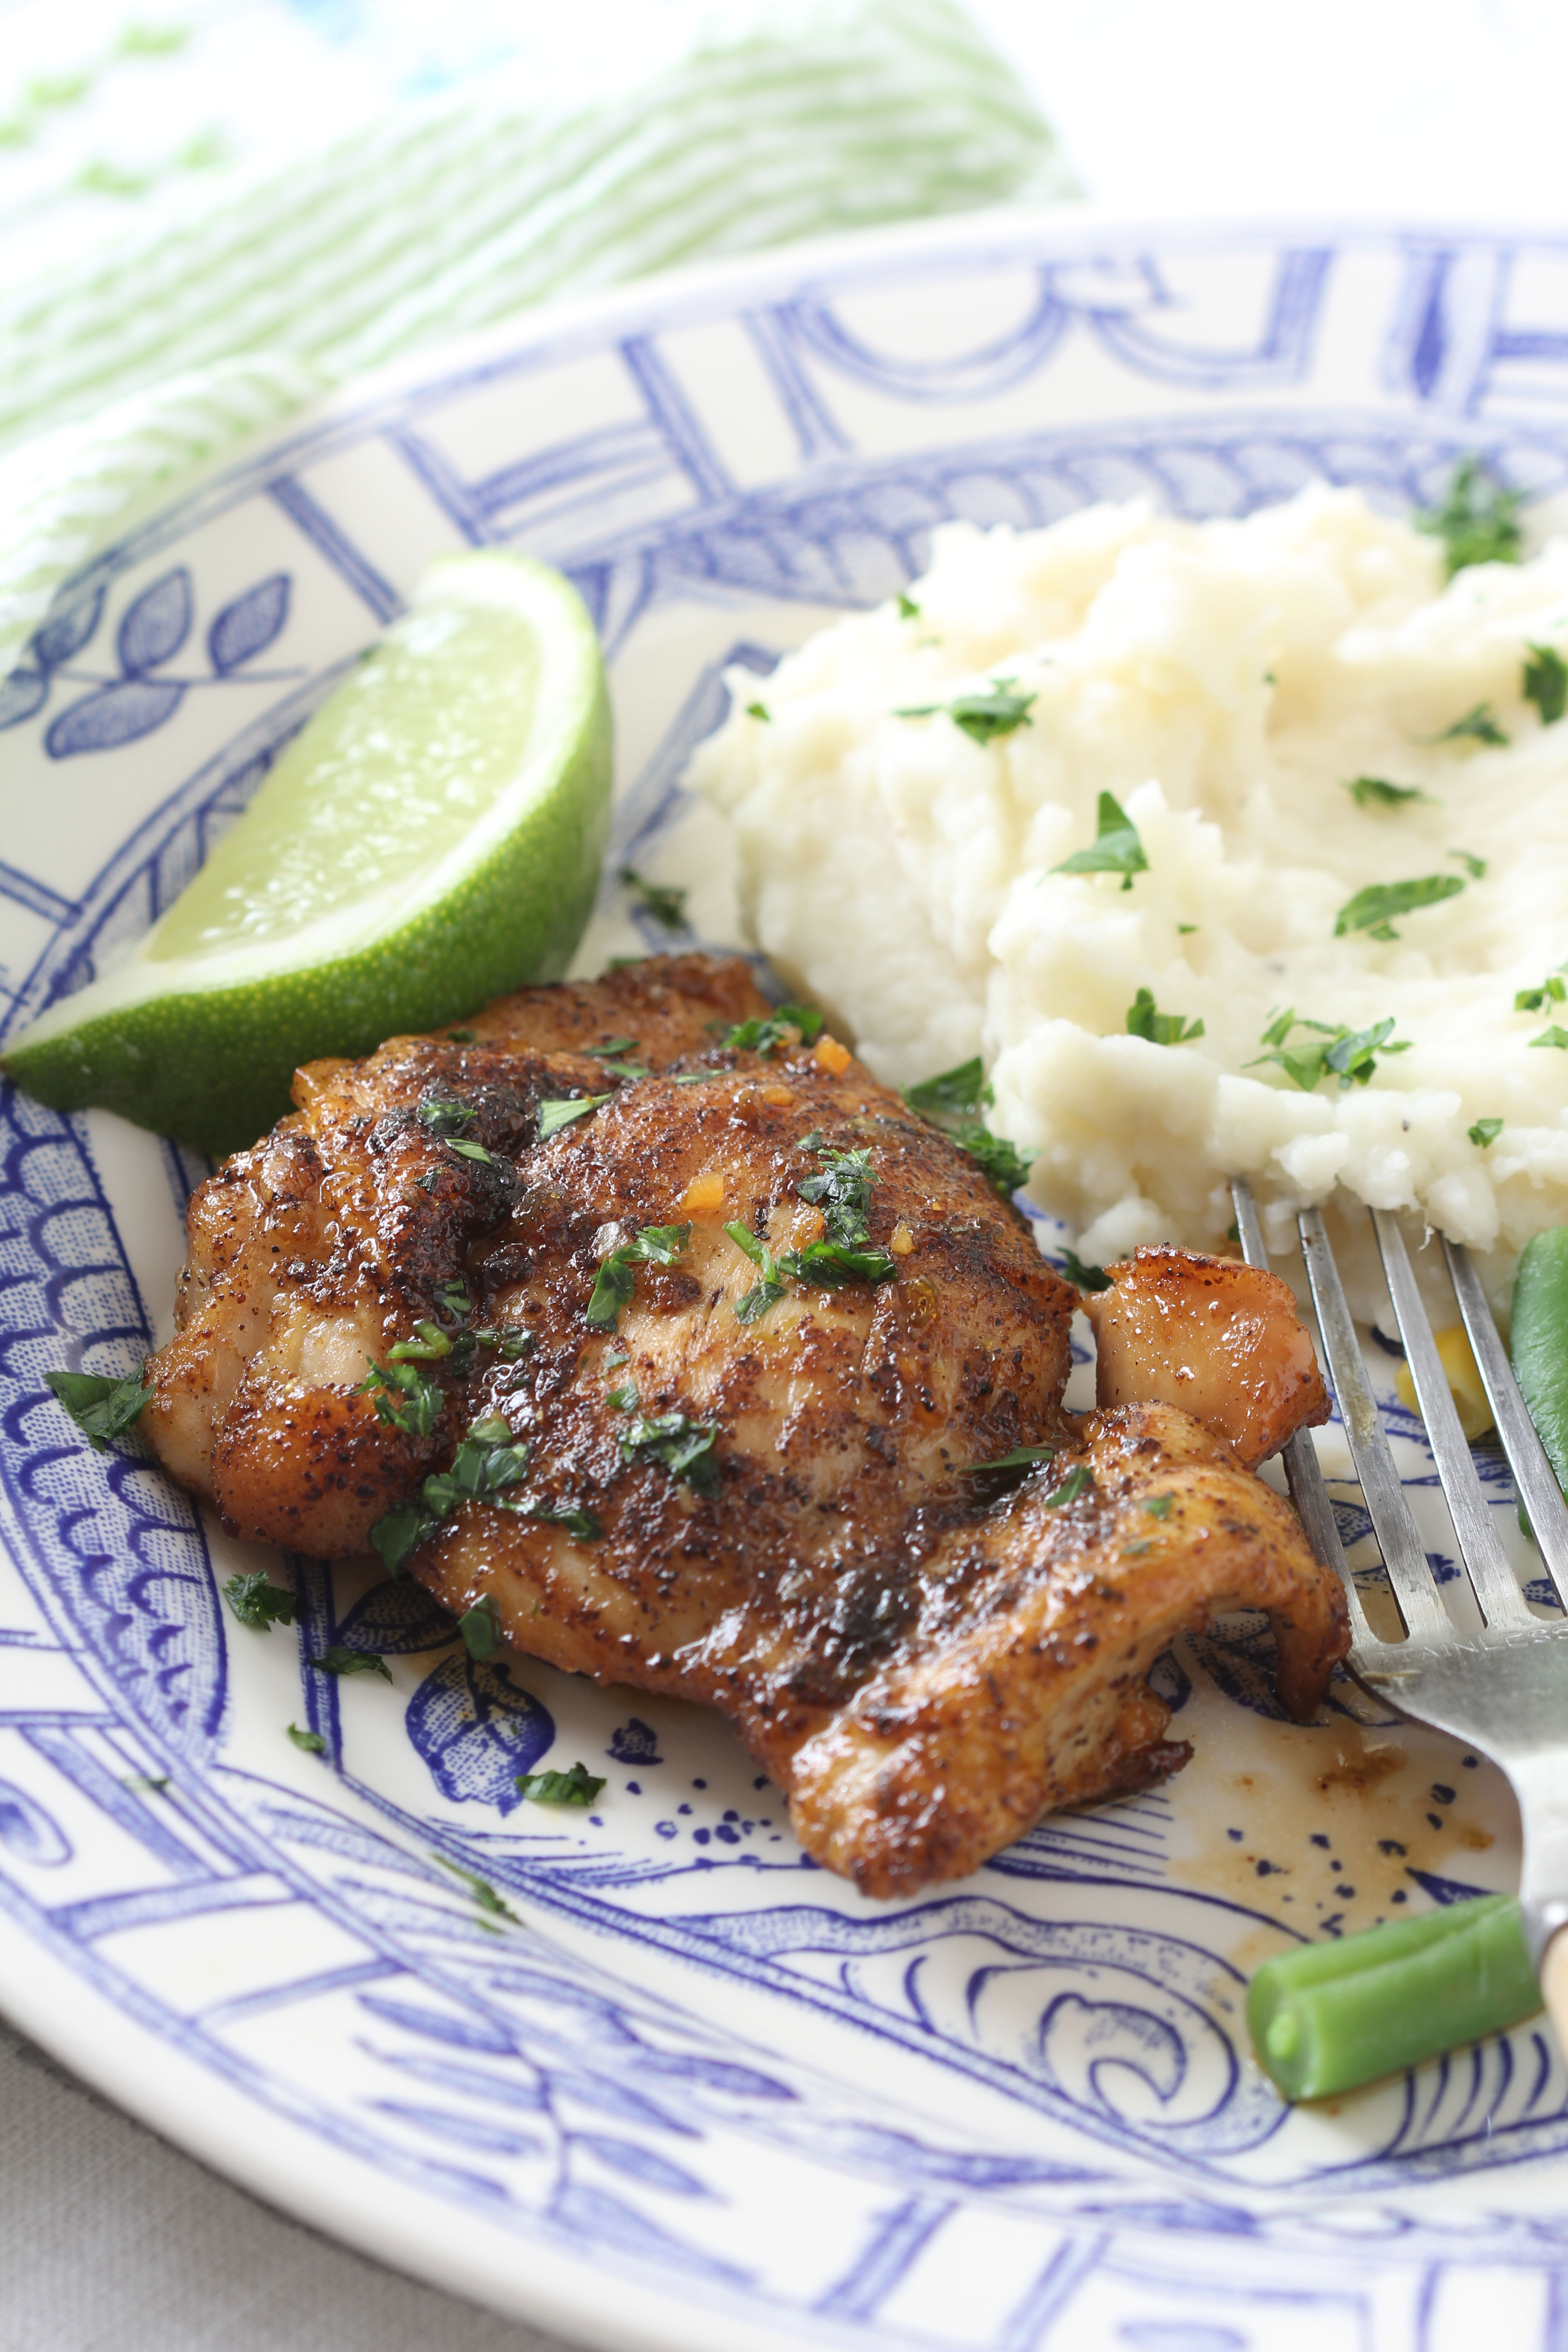 Looking for a easy, weeknight diner? Then give this Skillet Honey Lime Chicken recipe that Ridgely shares on her blog Ridgely's Radar.